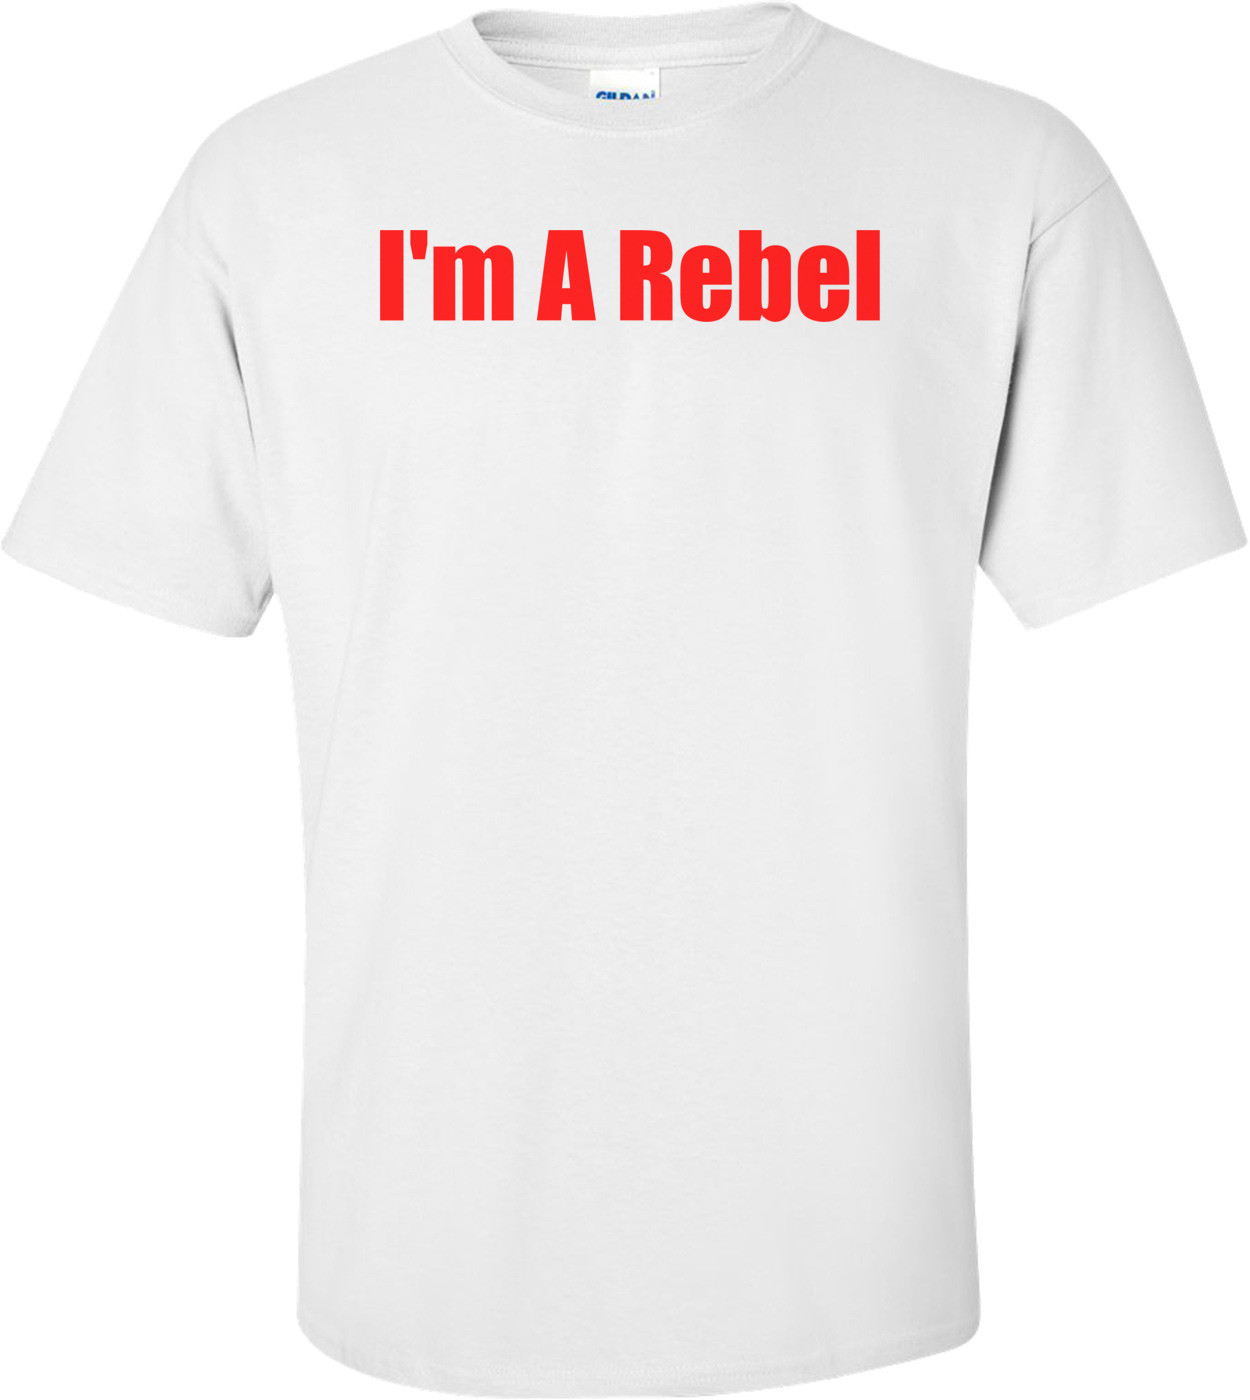 I'm A Rebel Shirt